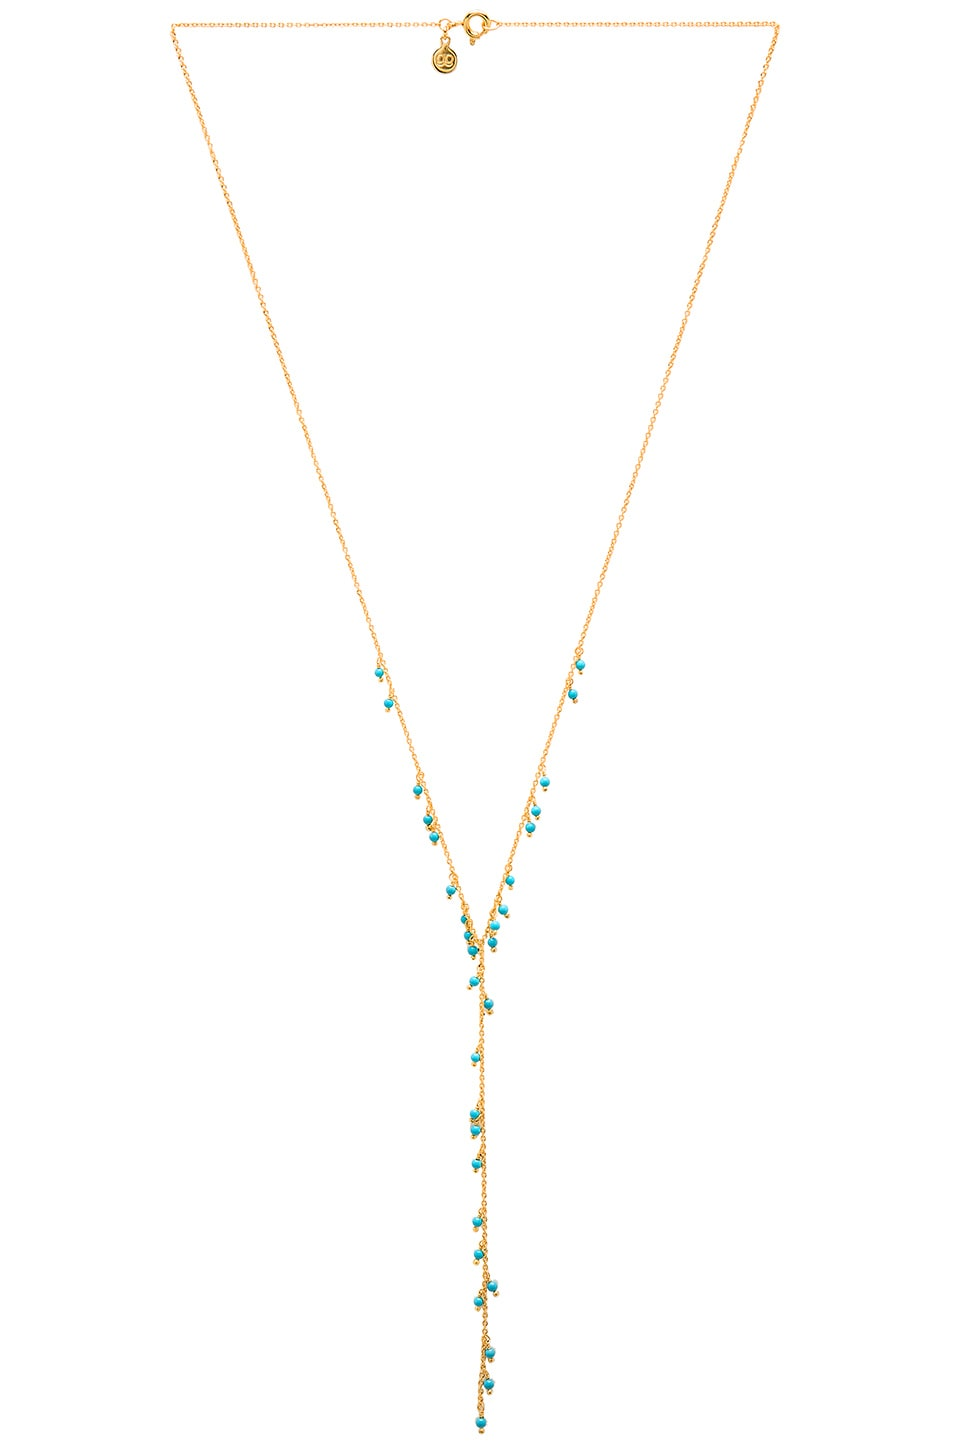 gorjana Lagoon Lariat Necklace in Gold & Turquoise